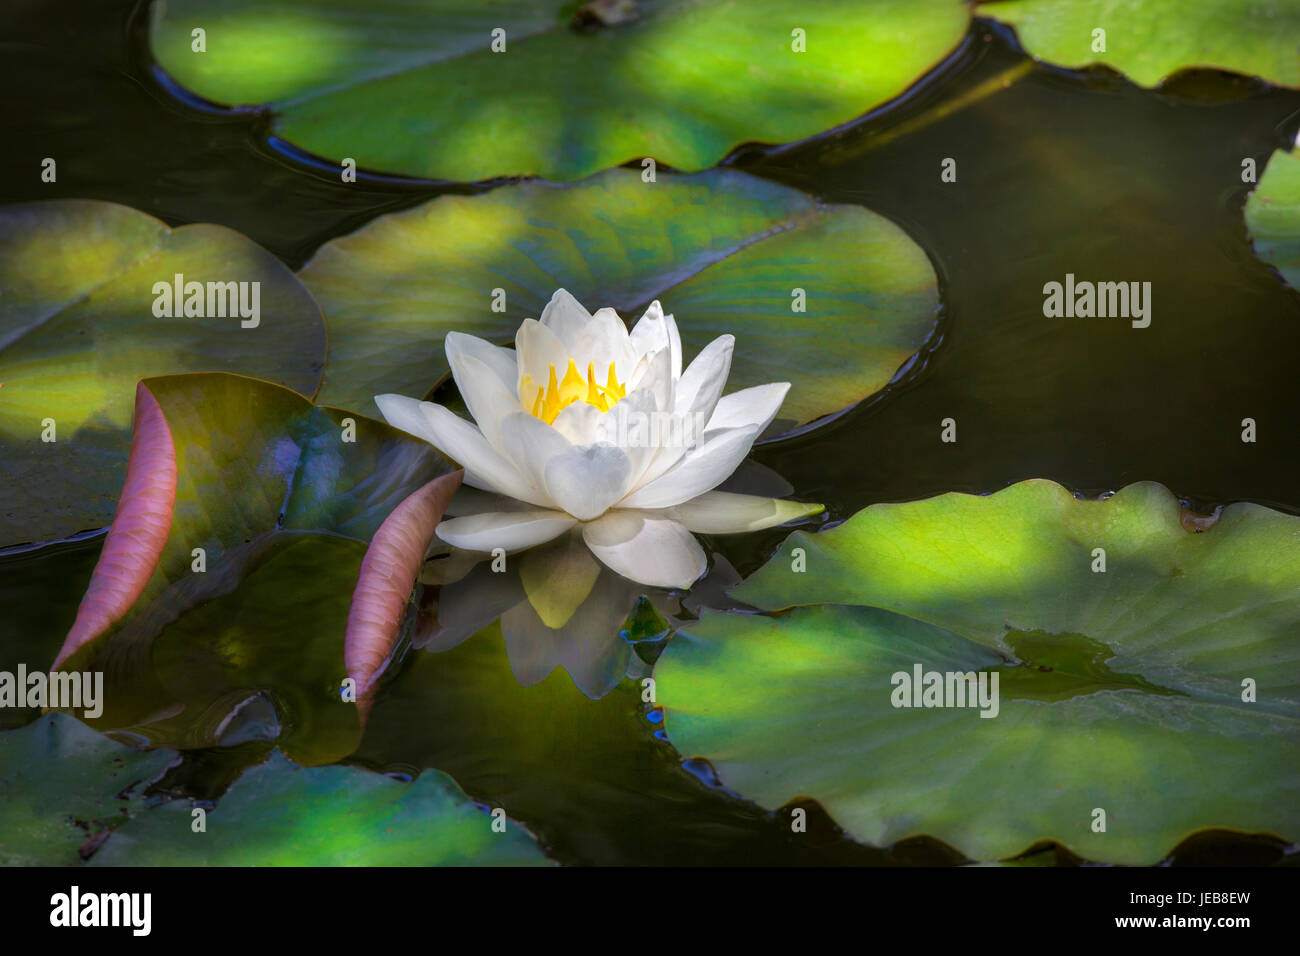 Water Lily - Stock Image